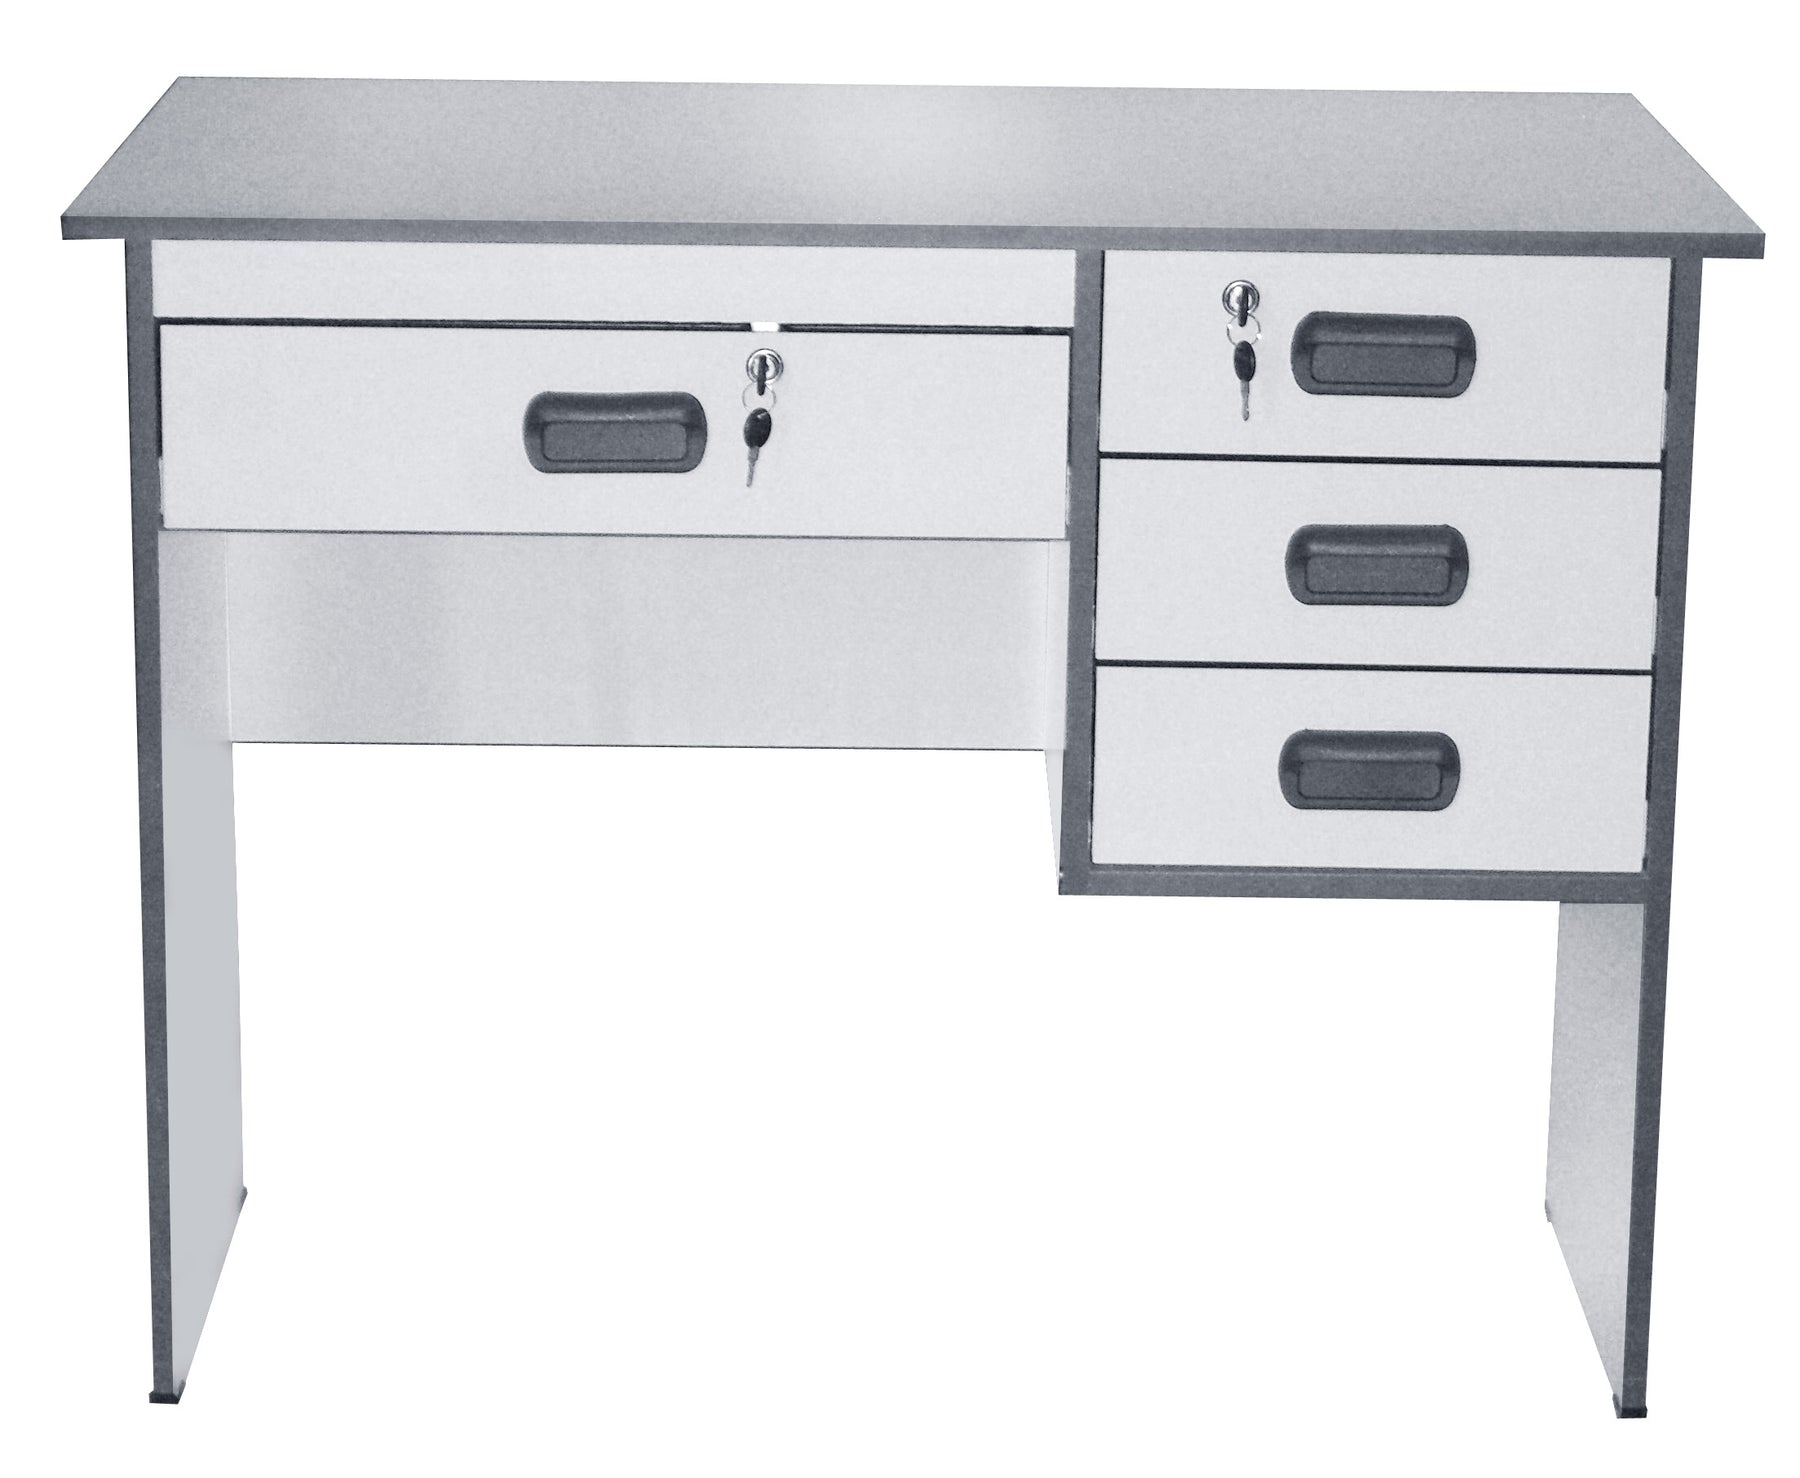 Office Computer Desk with Center and Three Side Drawers, Light Gray, 1 x 0.6 m